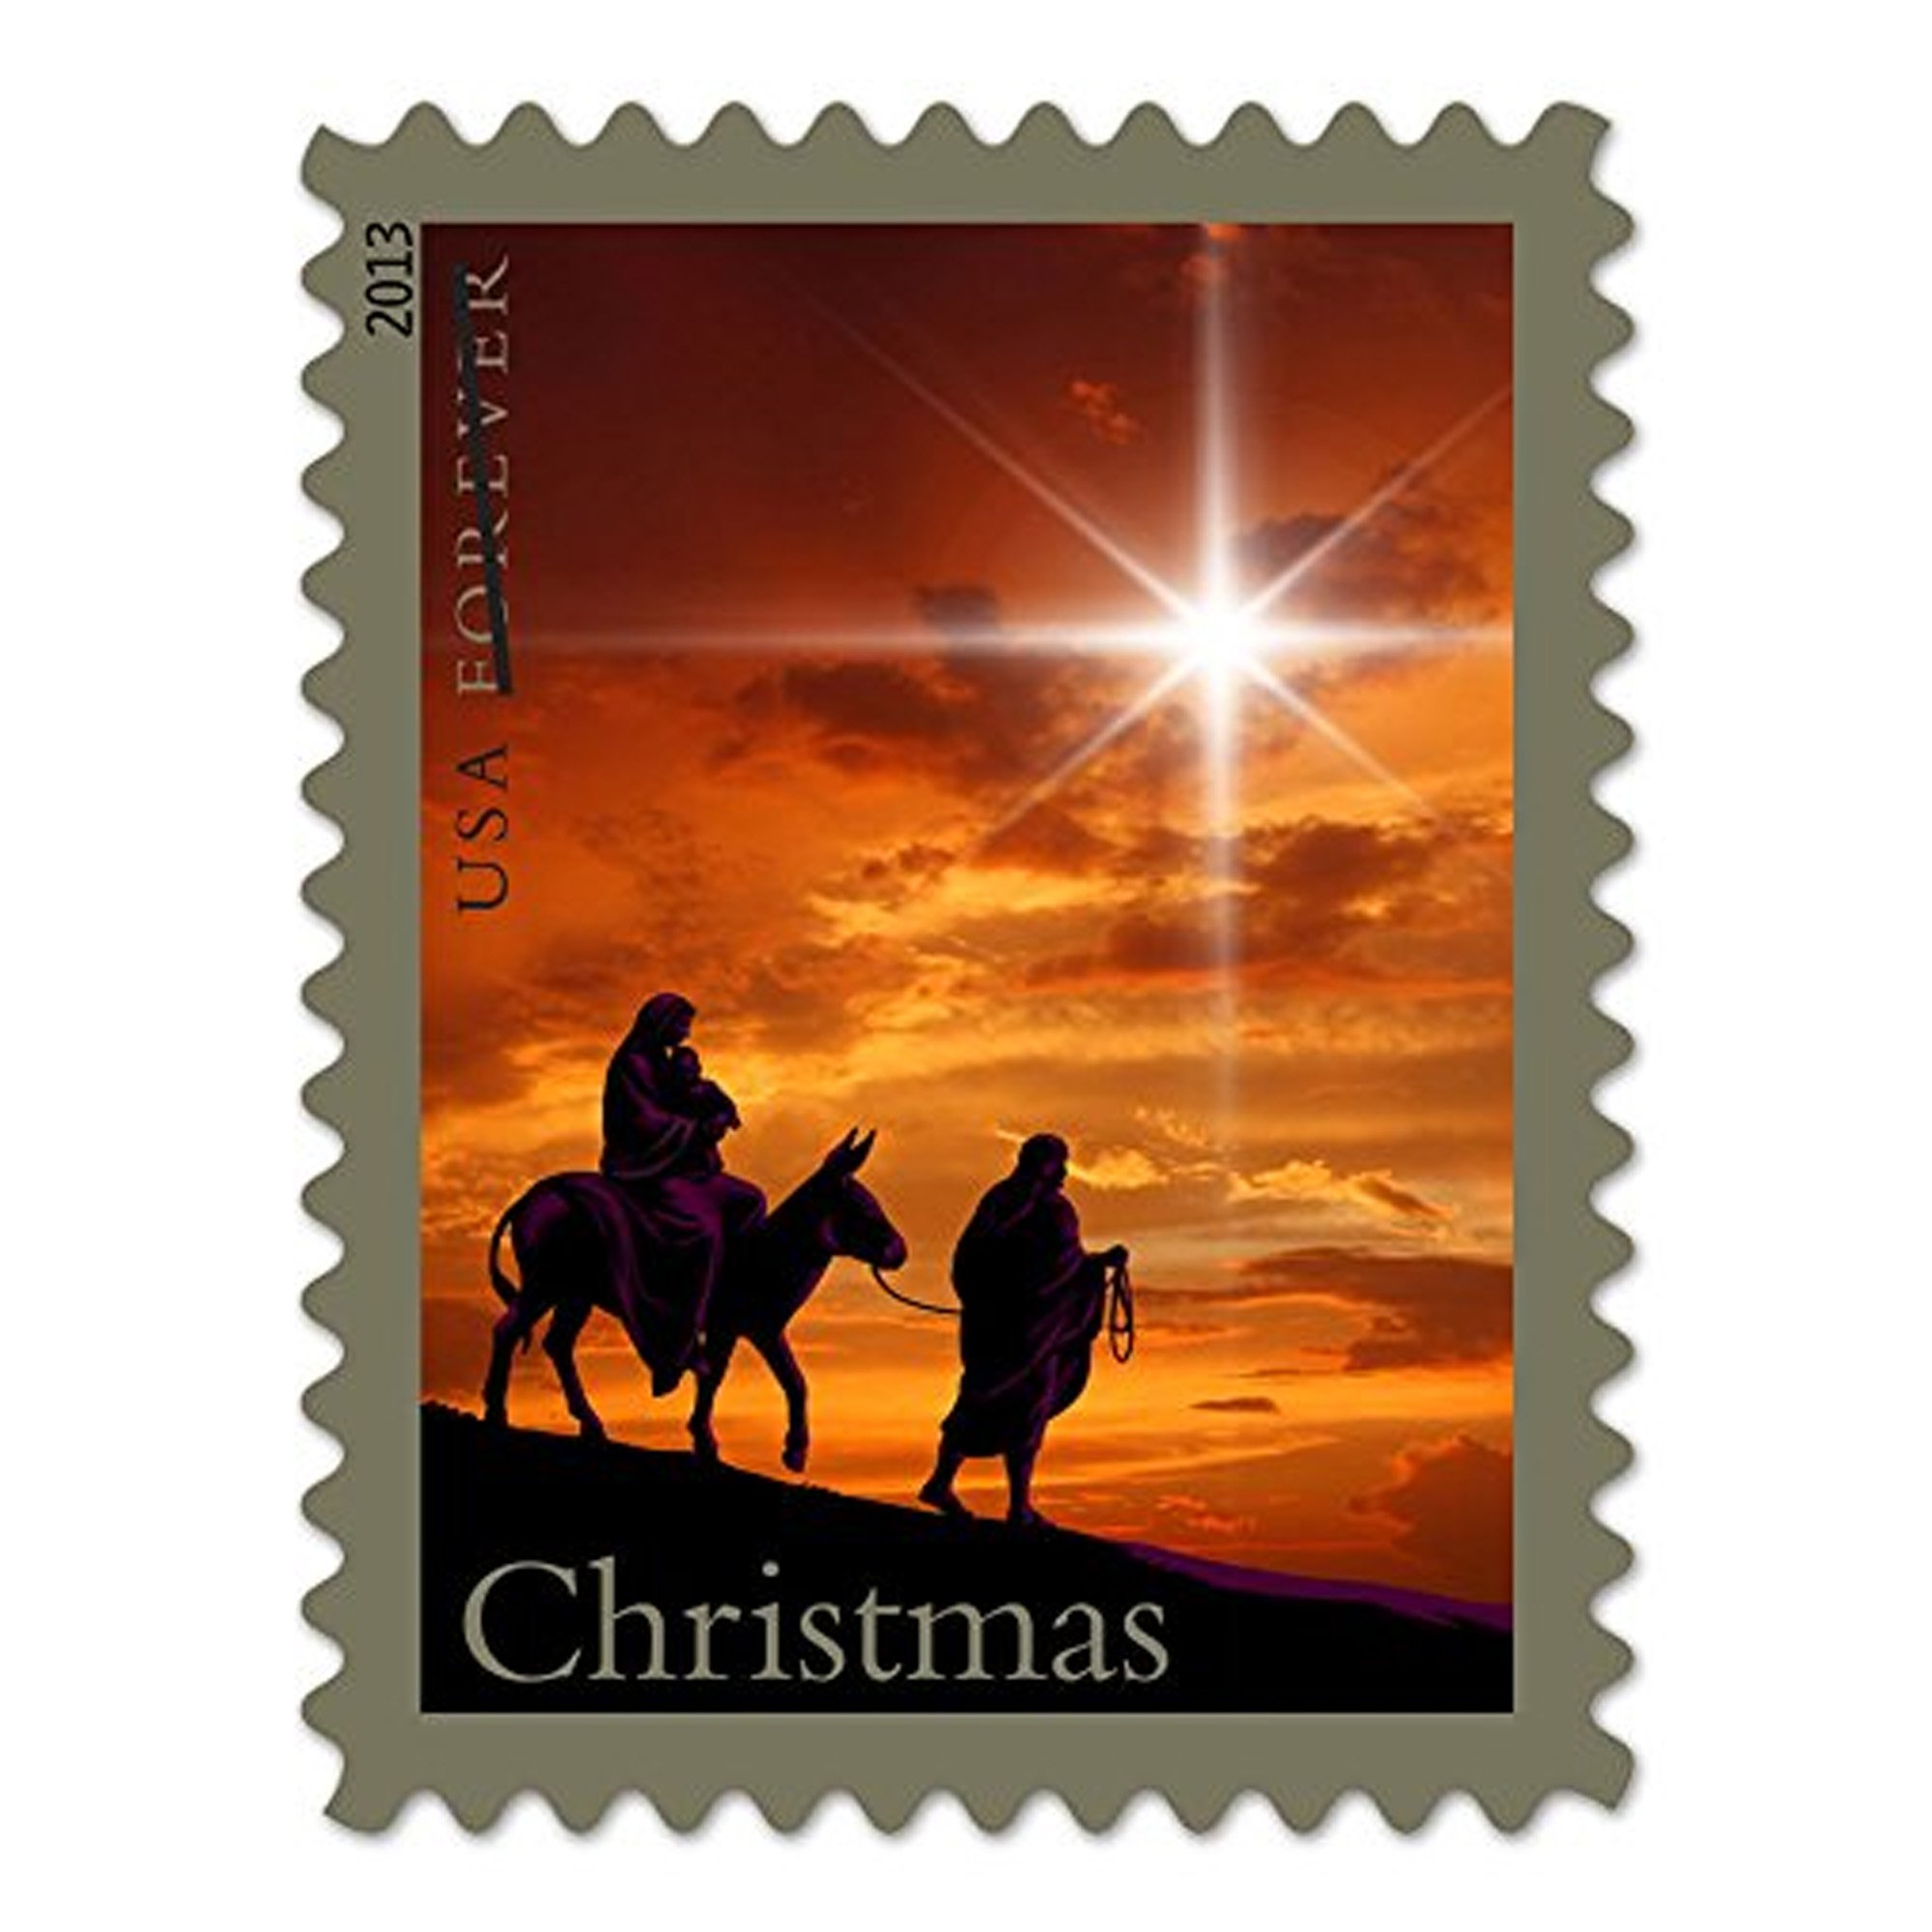 Holy Family Christmas 5 Sheets of 20 Forever Postage Stamp by USPS (Image #1)